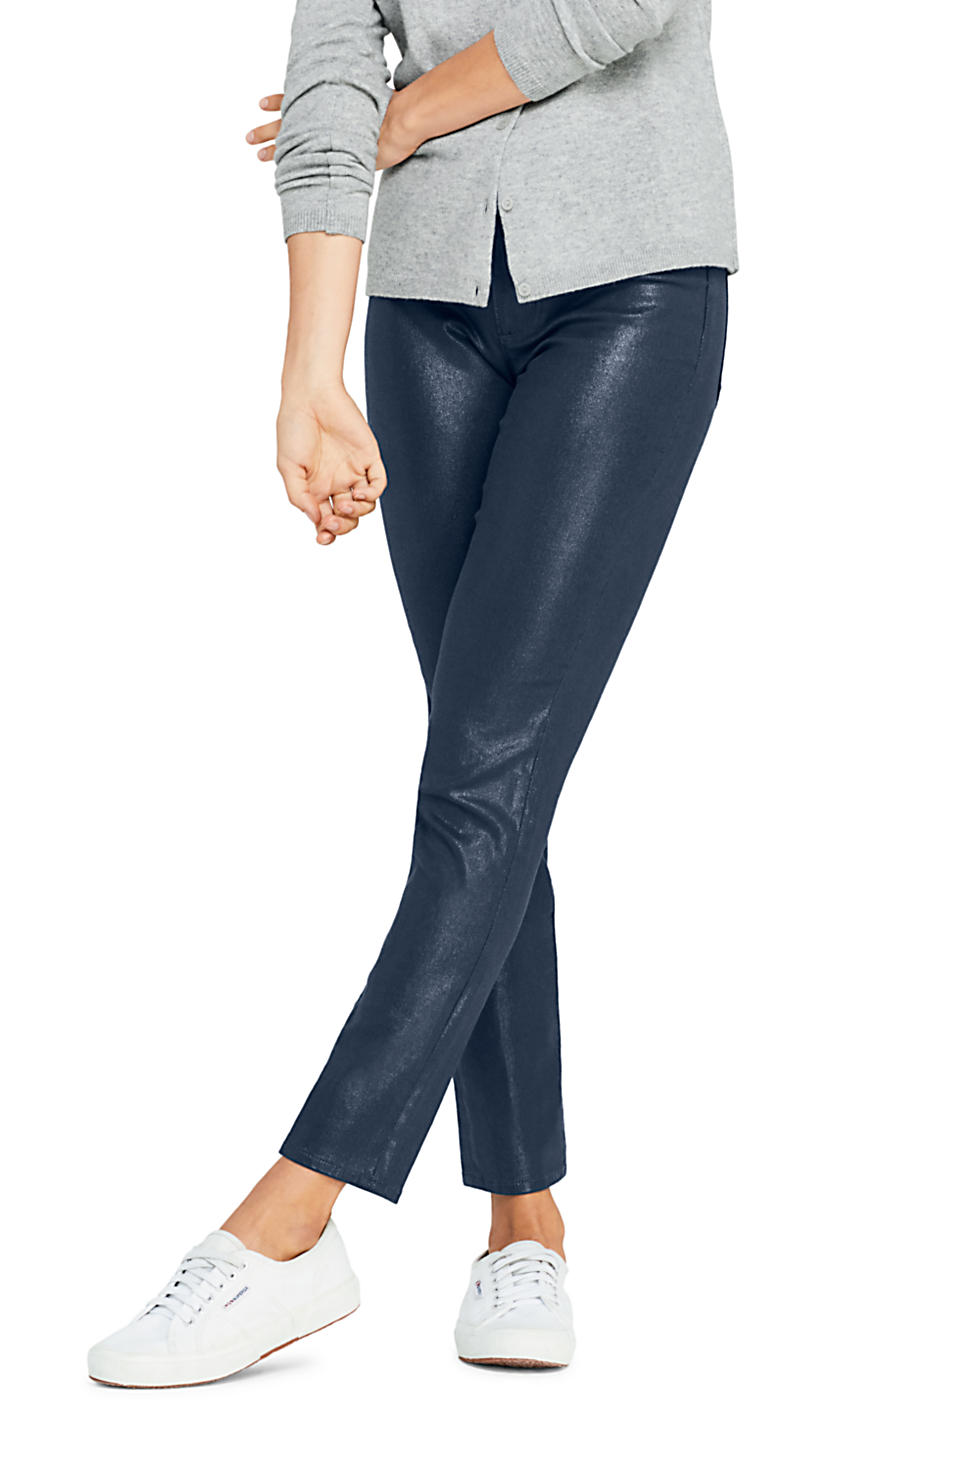 Lands' End Women's High-Rise Slim Straight Shimmer Jeans (various colors/sizes)